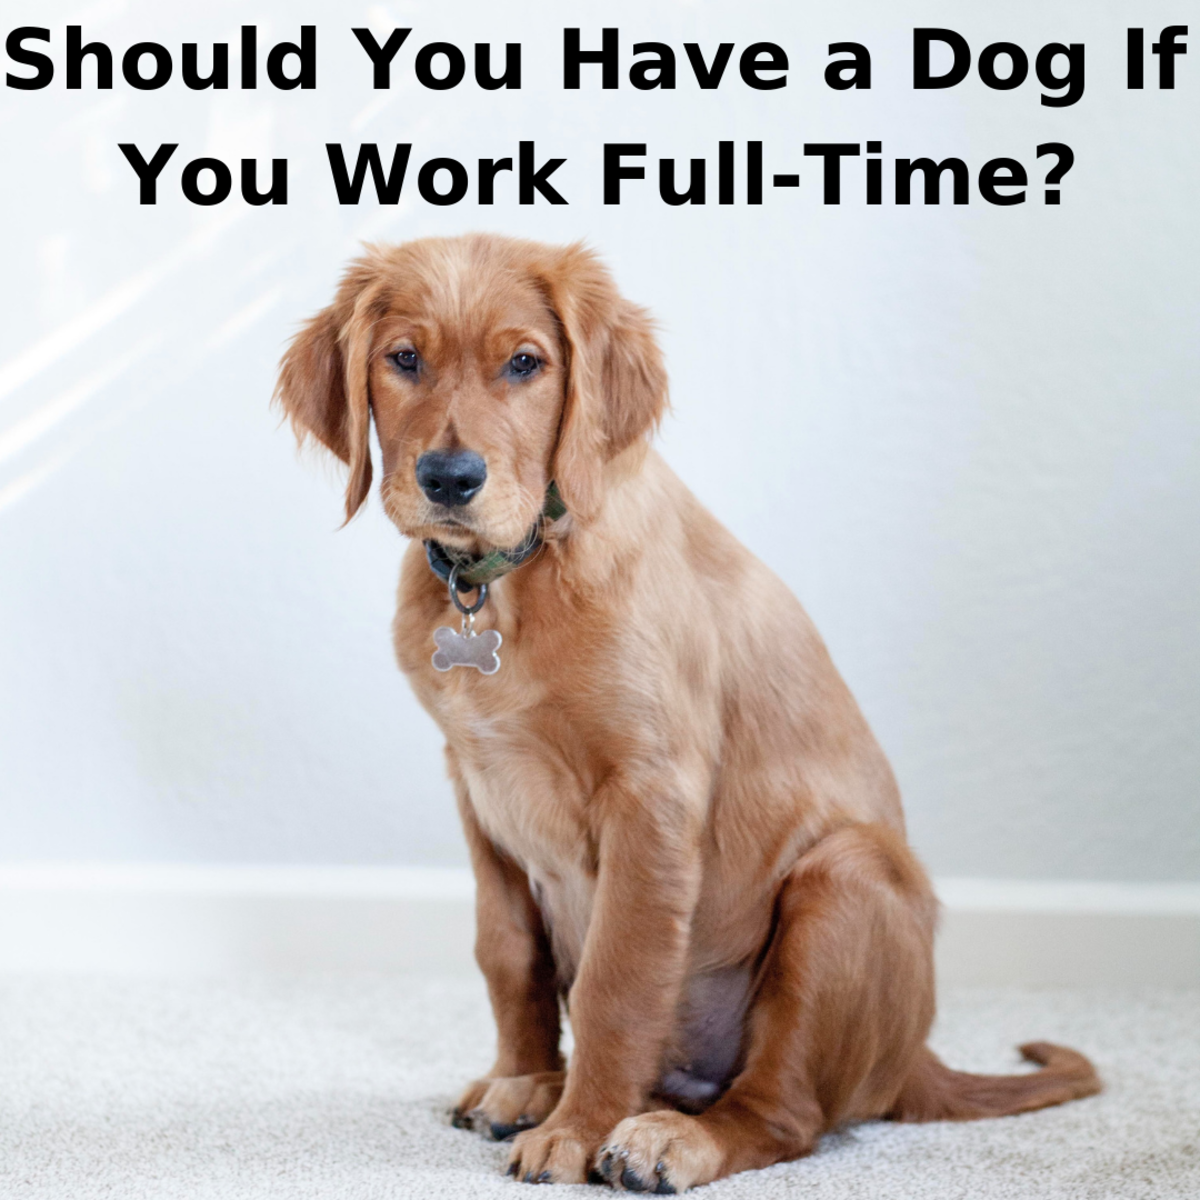 Is It Right to Have a Dog If You Work Full-Time?